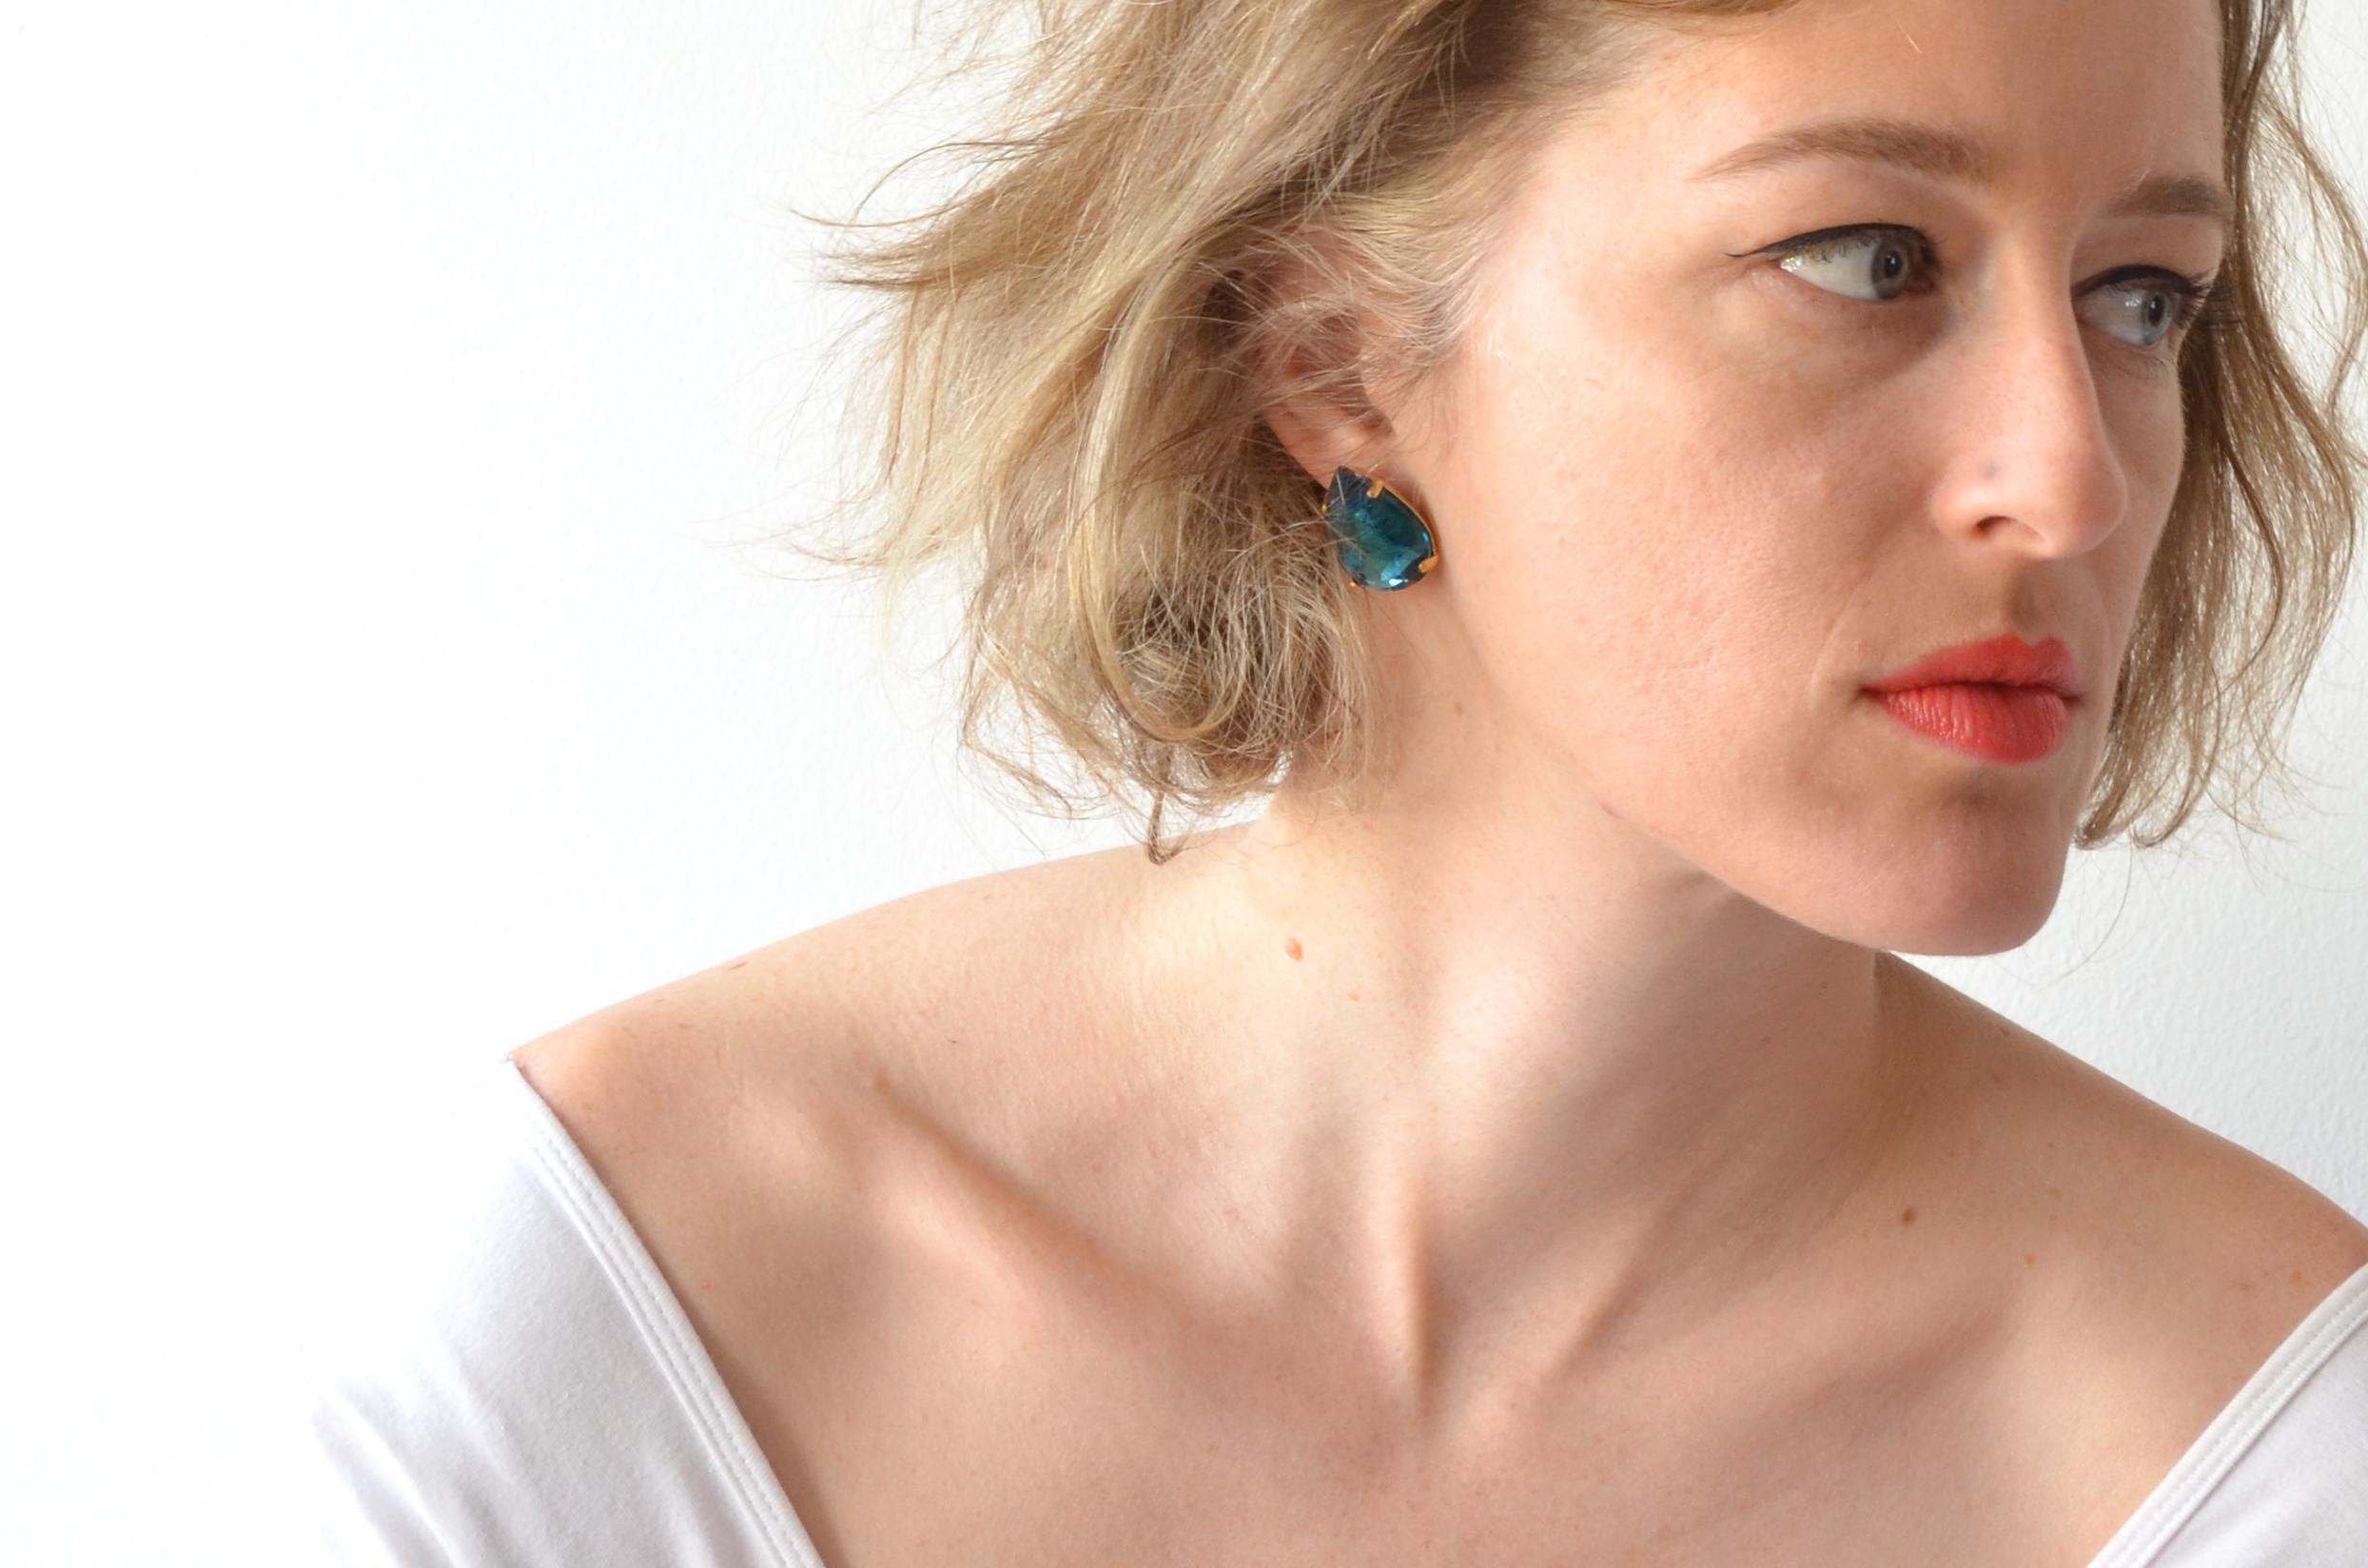 turqoise raindrop earrings